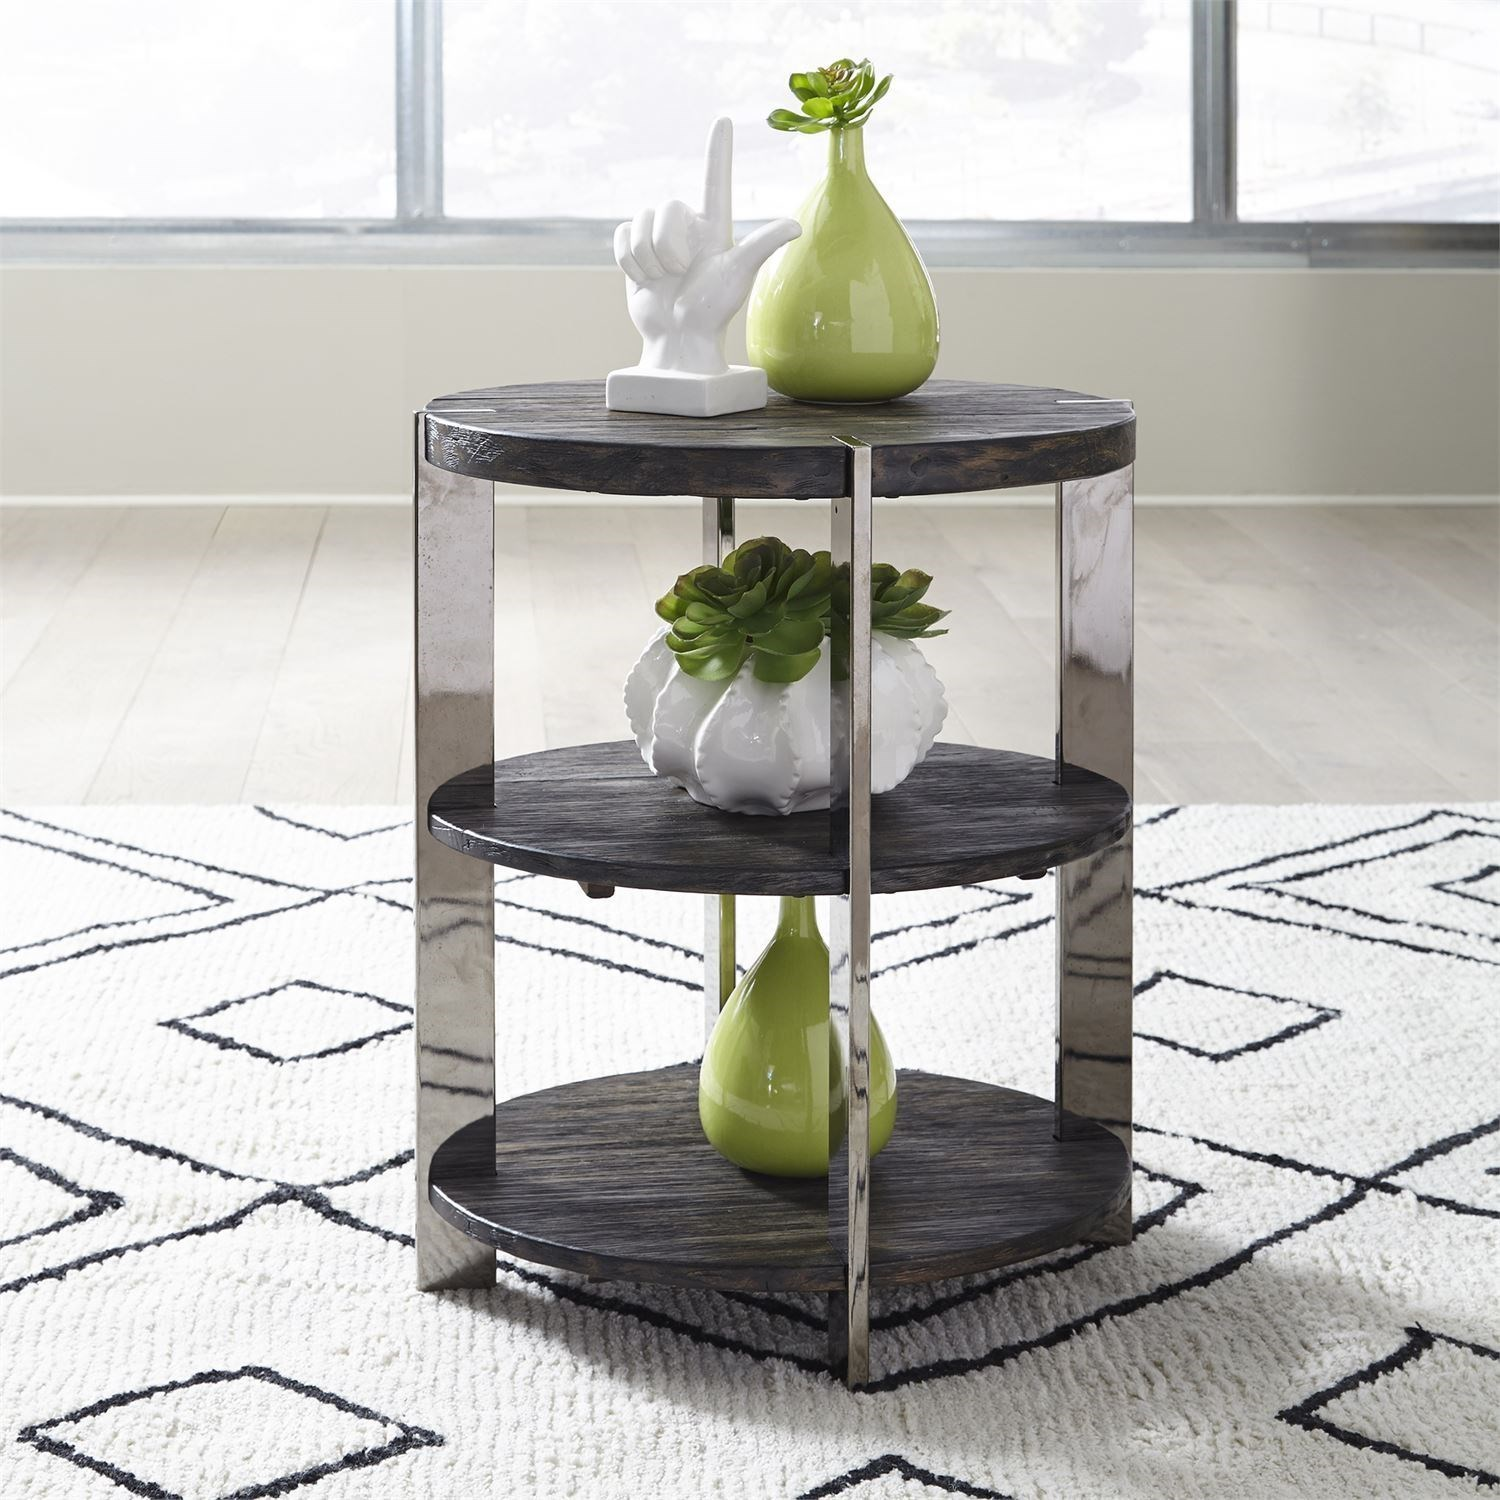 Contemporary Chairside Table with Metal Legs